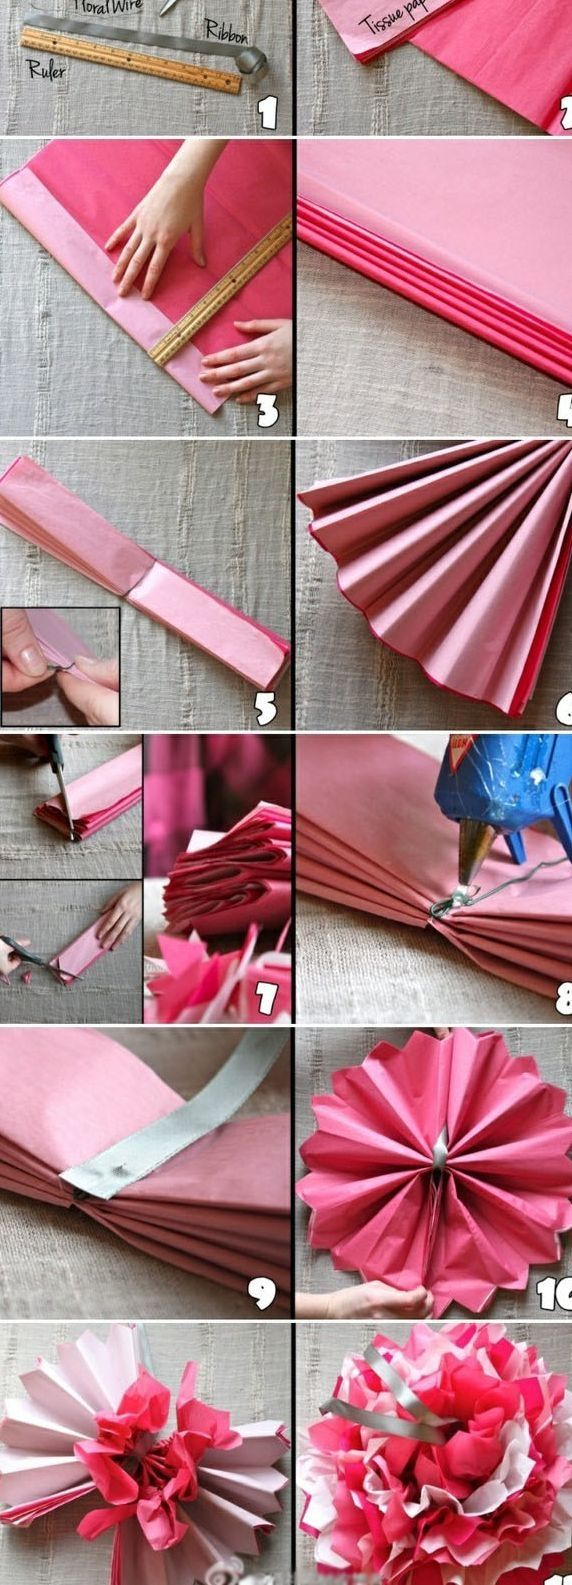 DIY Pom Poms Diy Crafts Home Made Easy Craft Idea Ideas